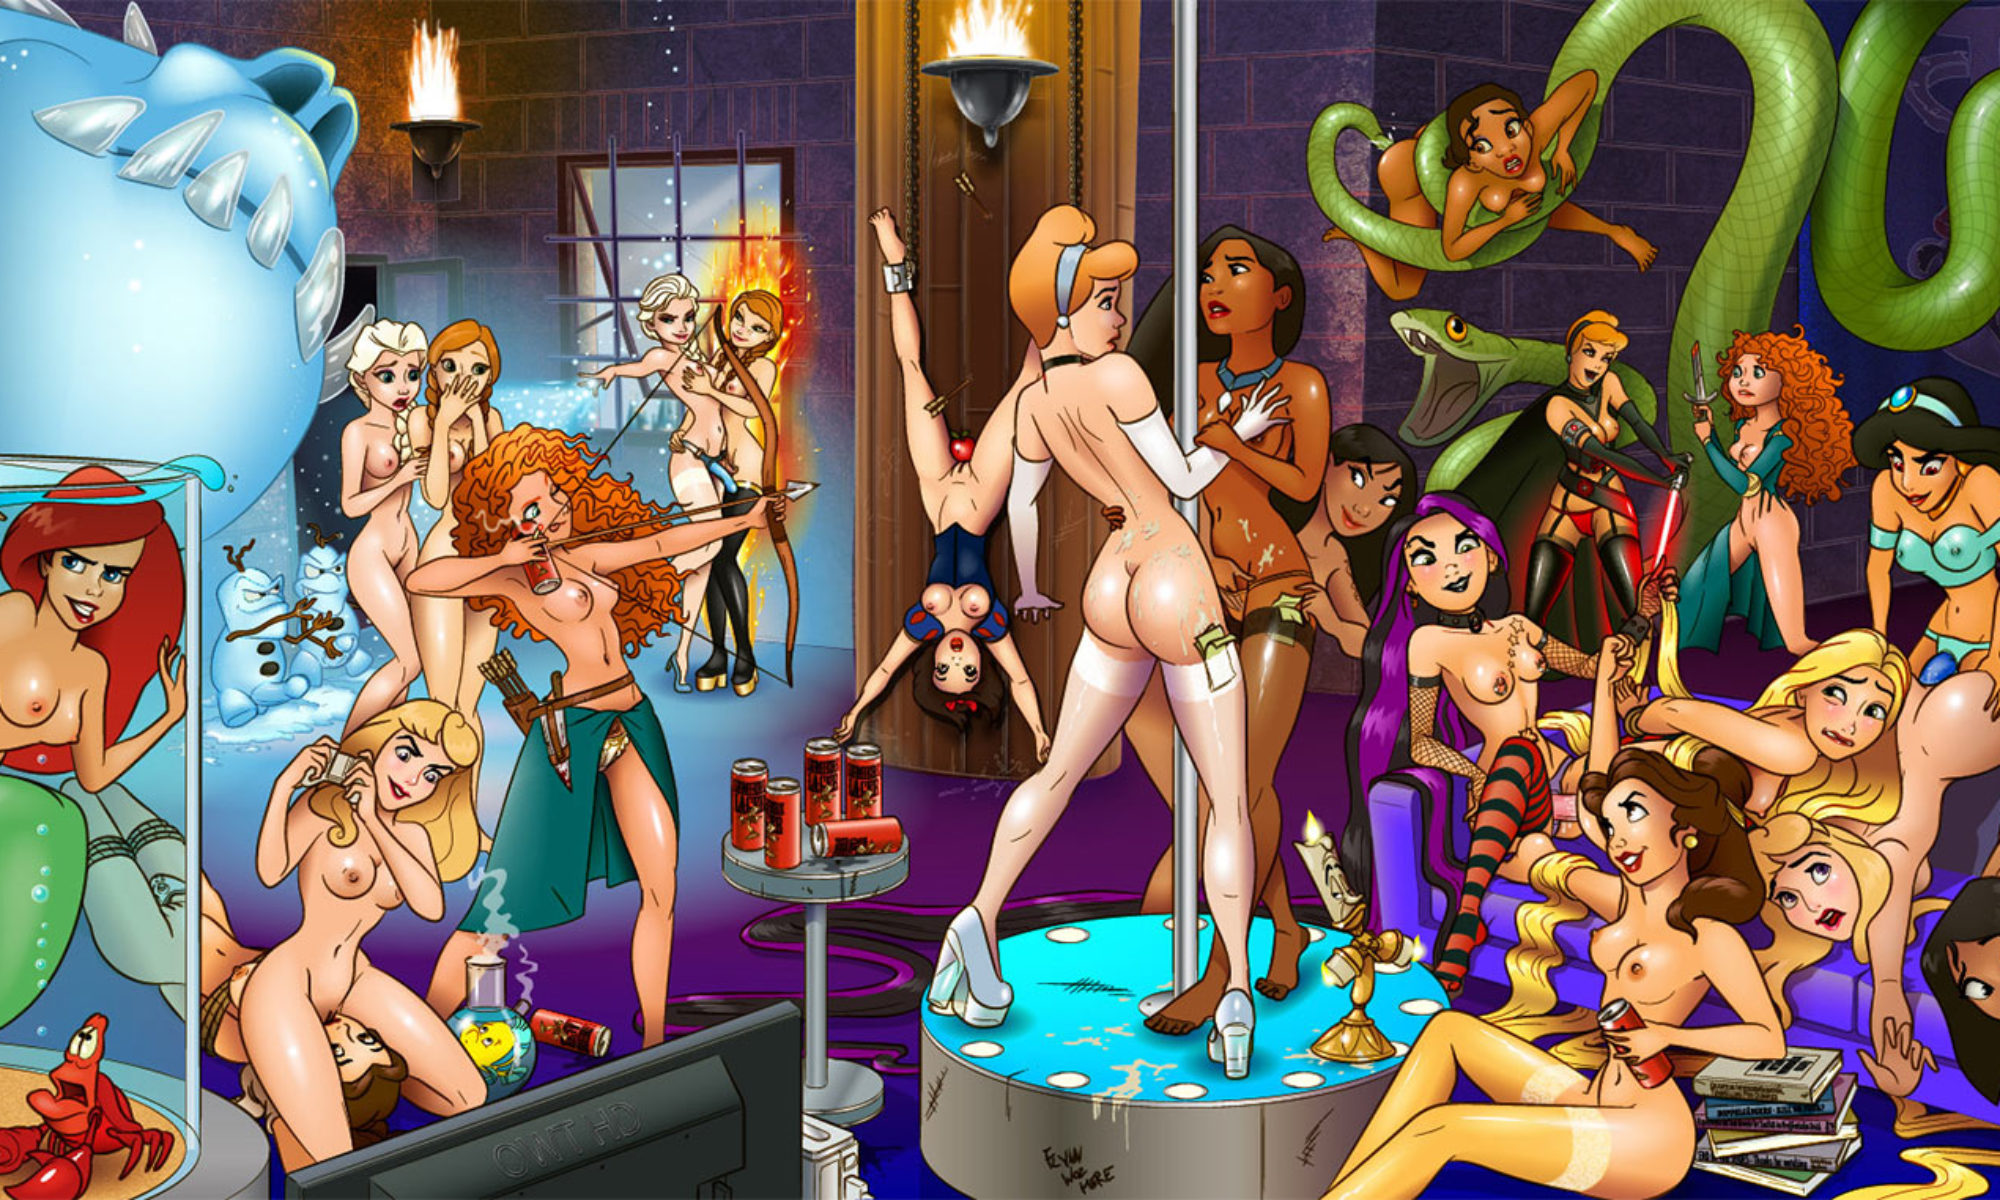 Sexy disney princess naked